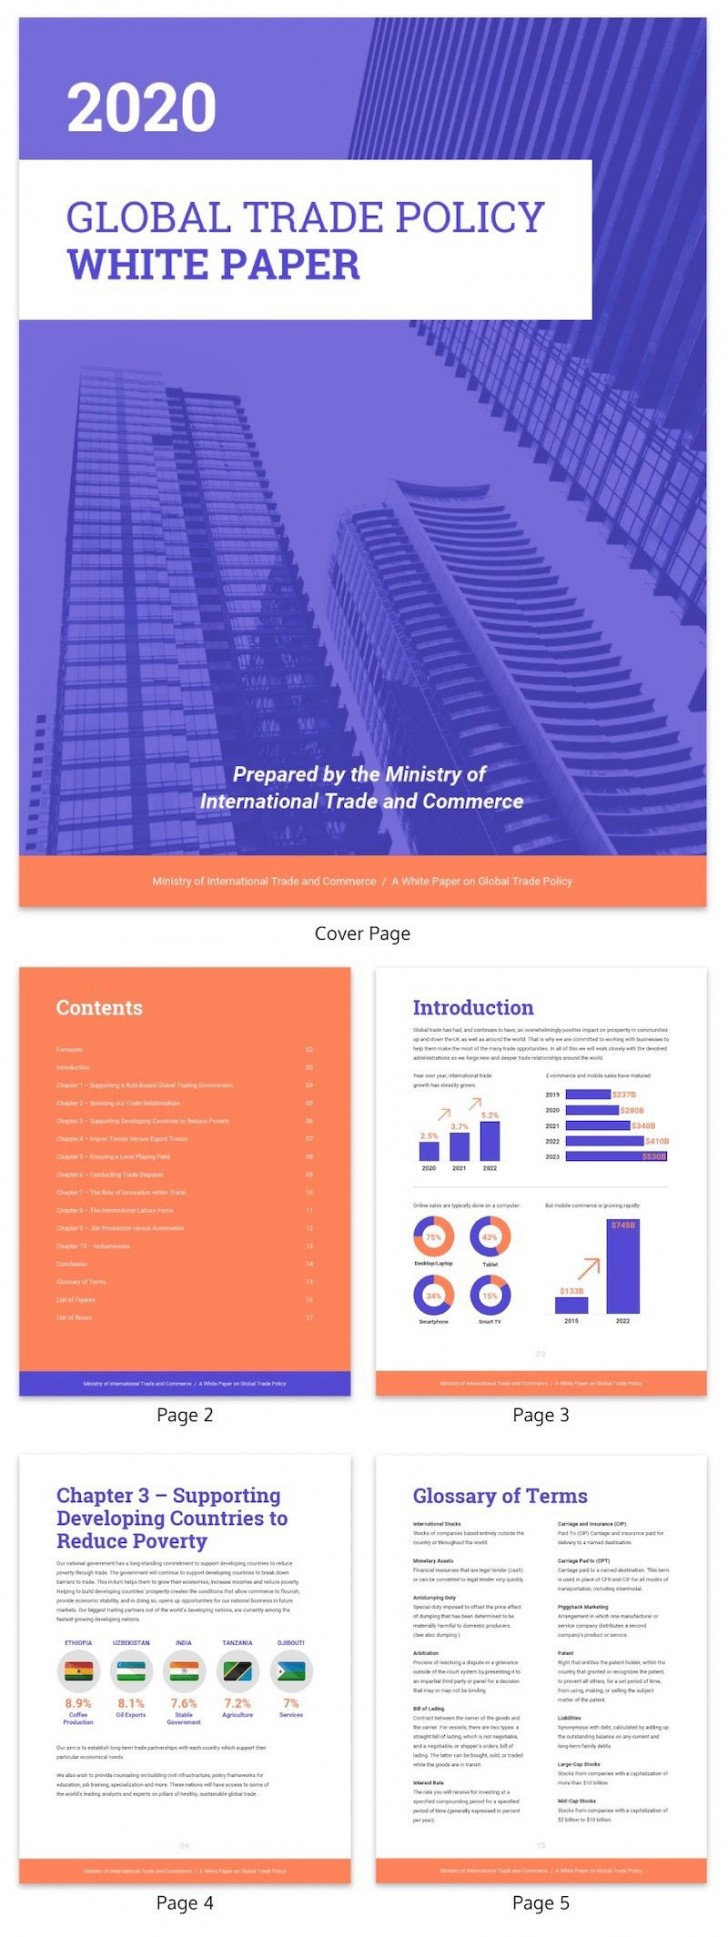 005 Unusual Technical White Paper Template Sample  Word Doc Free Download 2013728